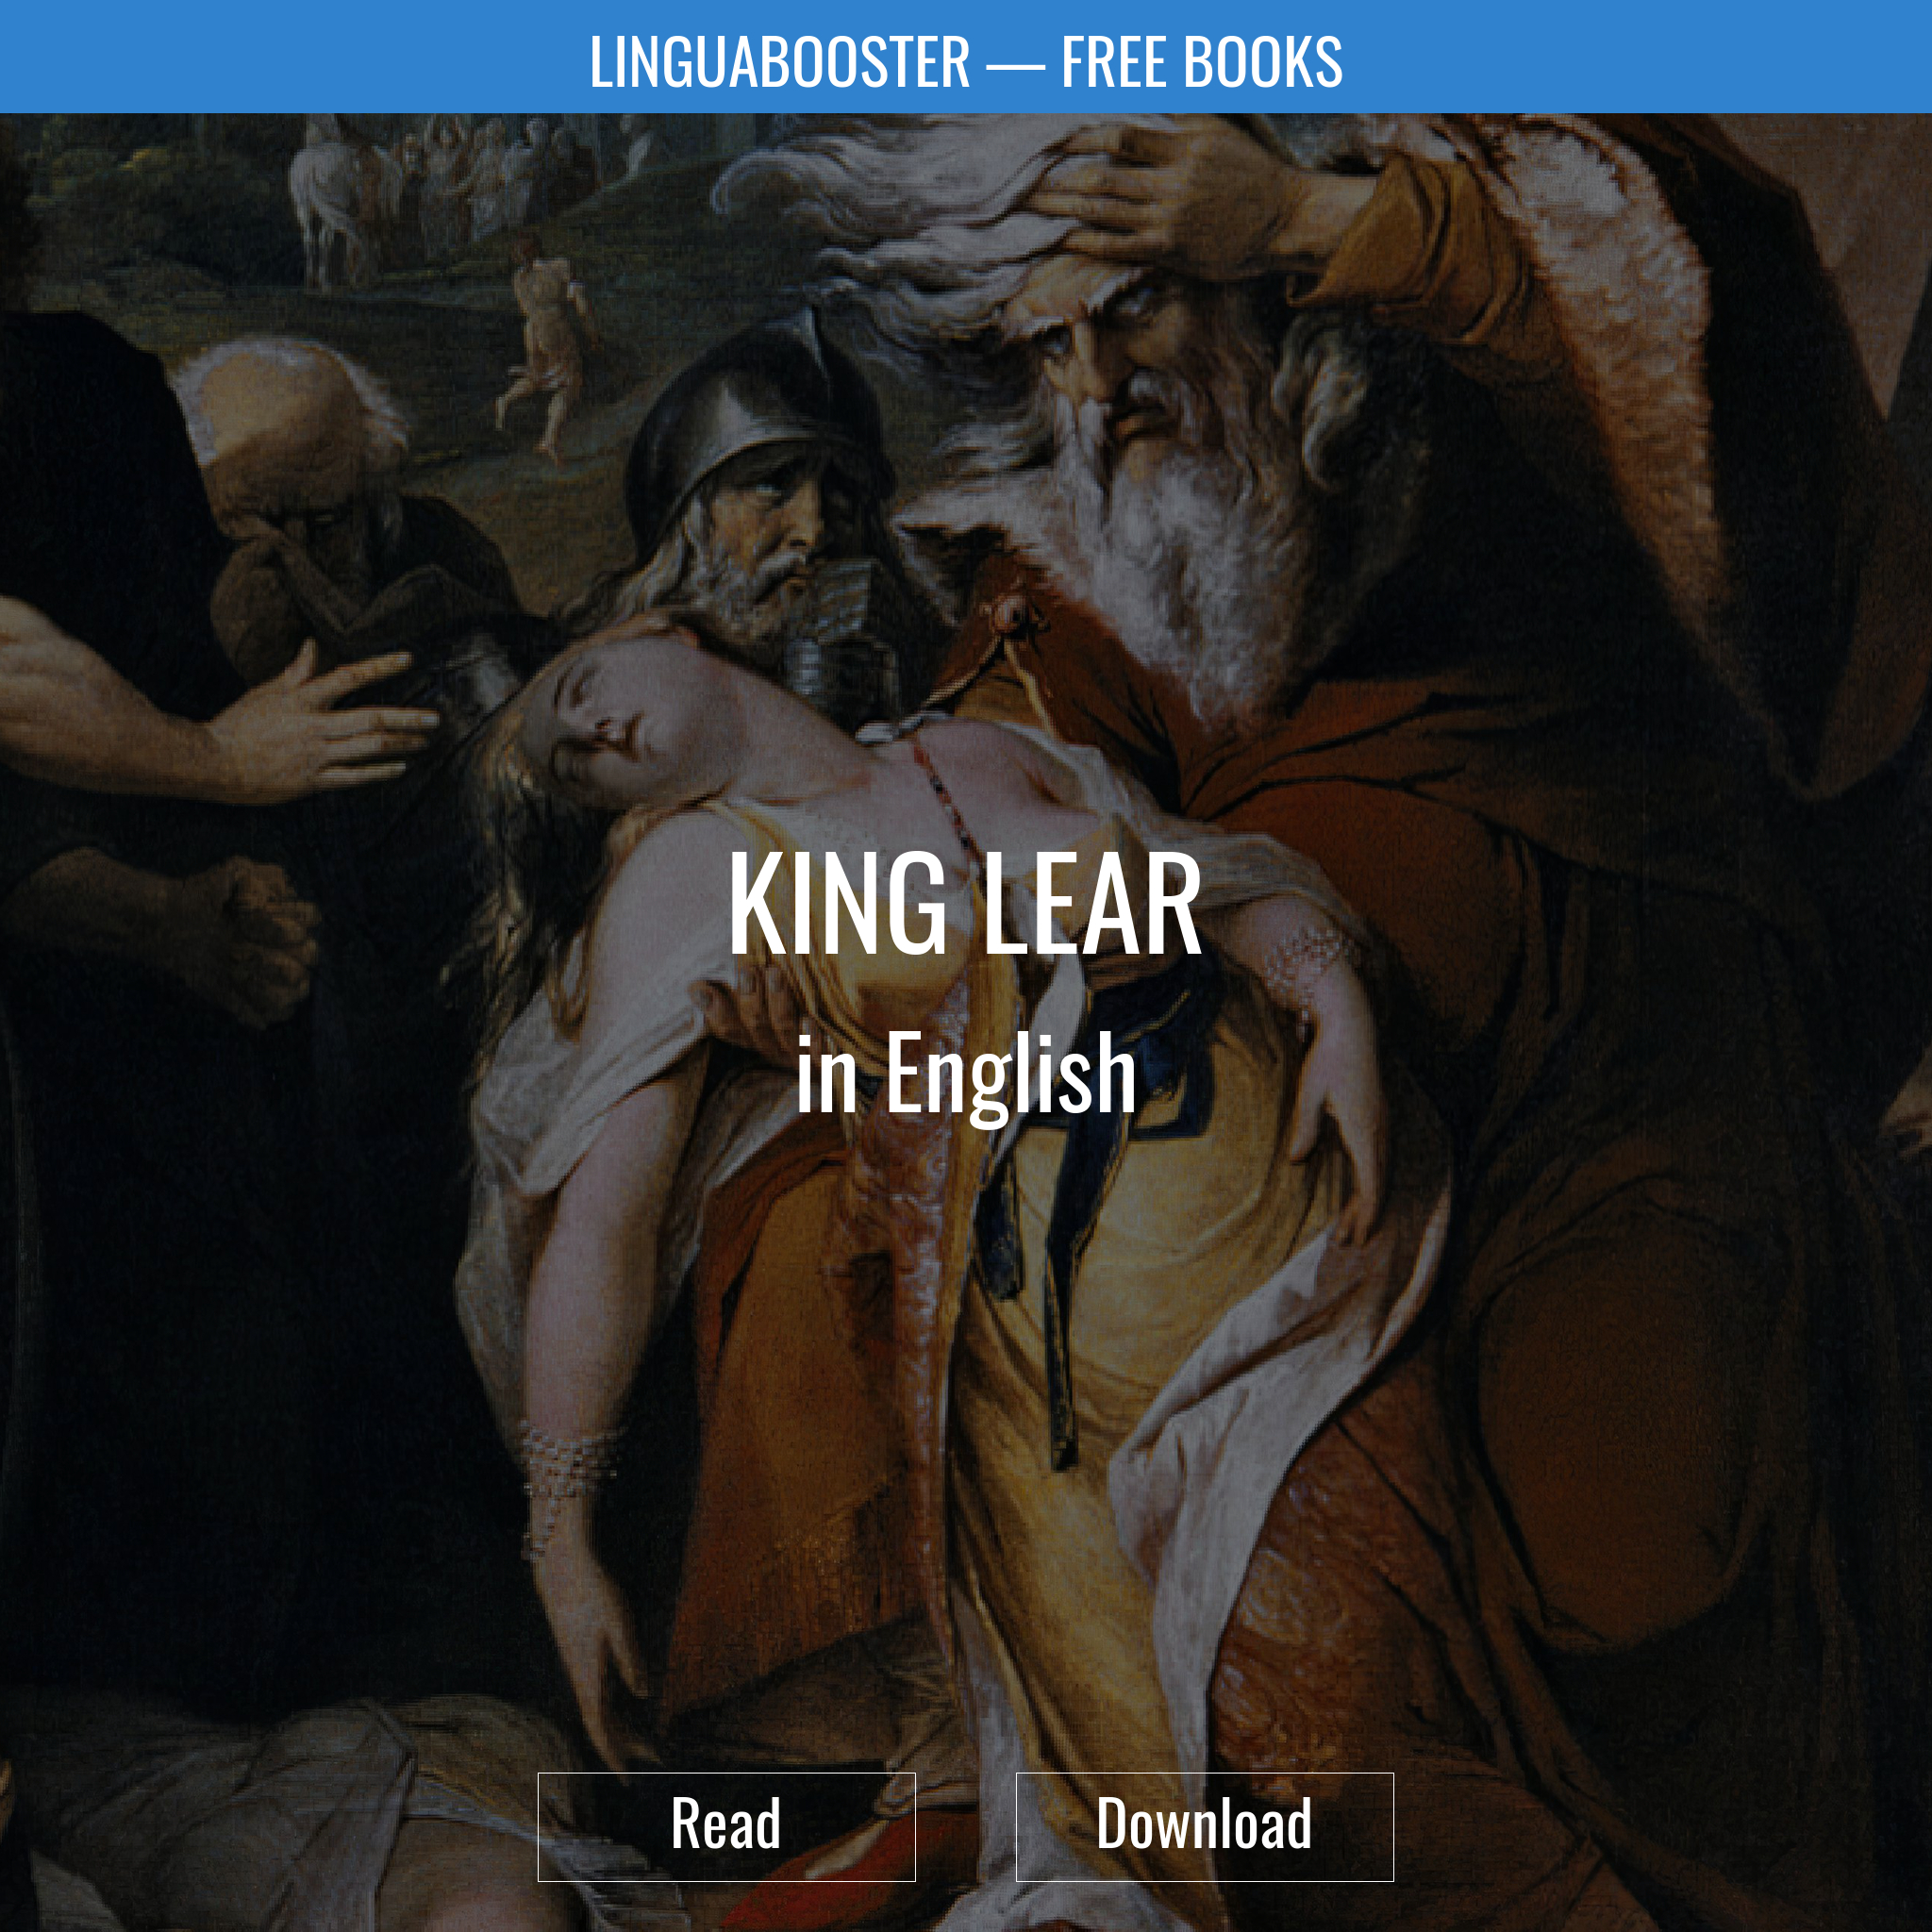 Read the book of